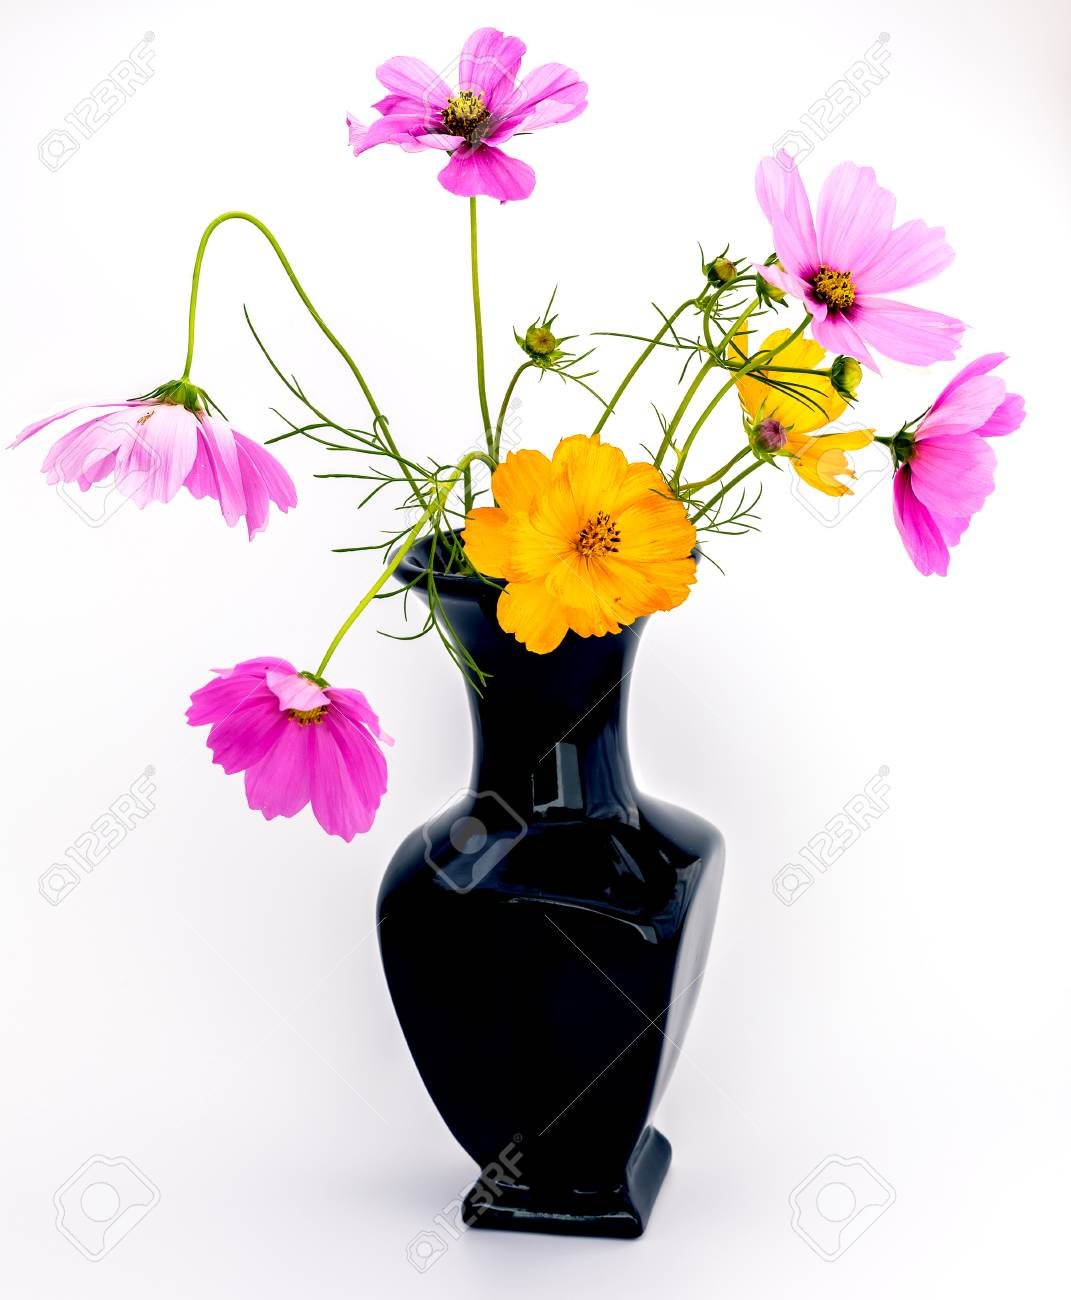 Black vase with a bouquet of purple and orange wild flowers isolated black vase with a bouquet of purple and orange wild flowers isolated on a white background mightylinksfo Image collections